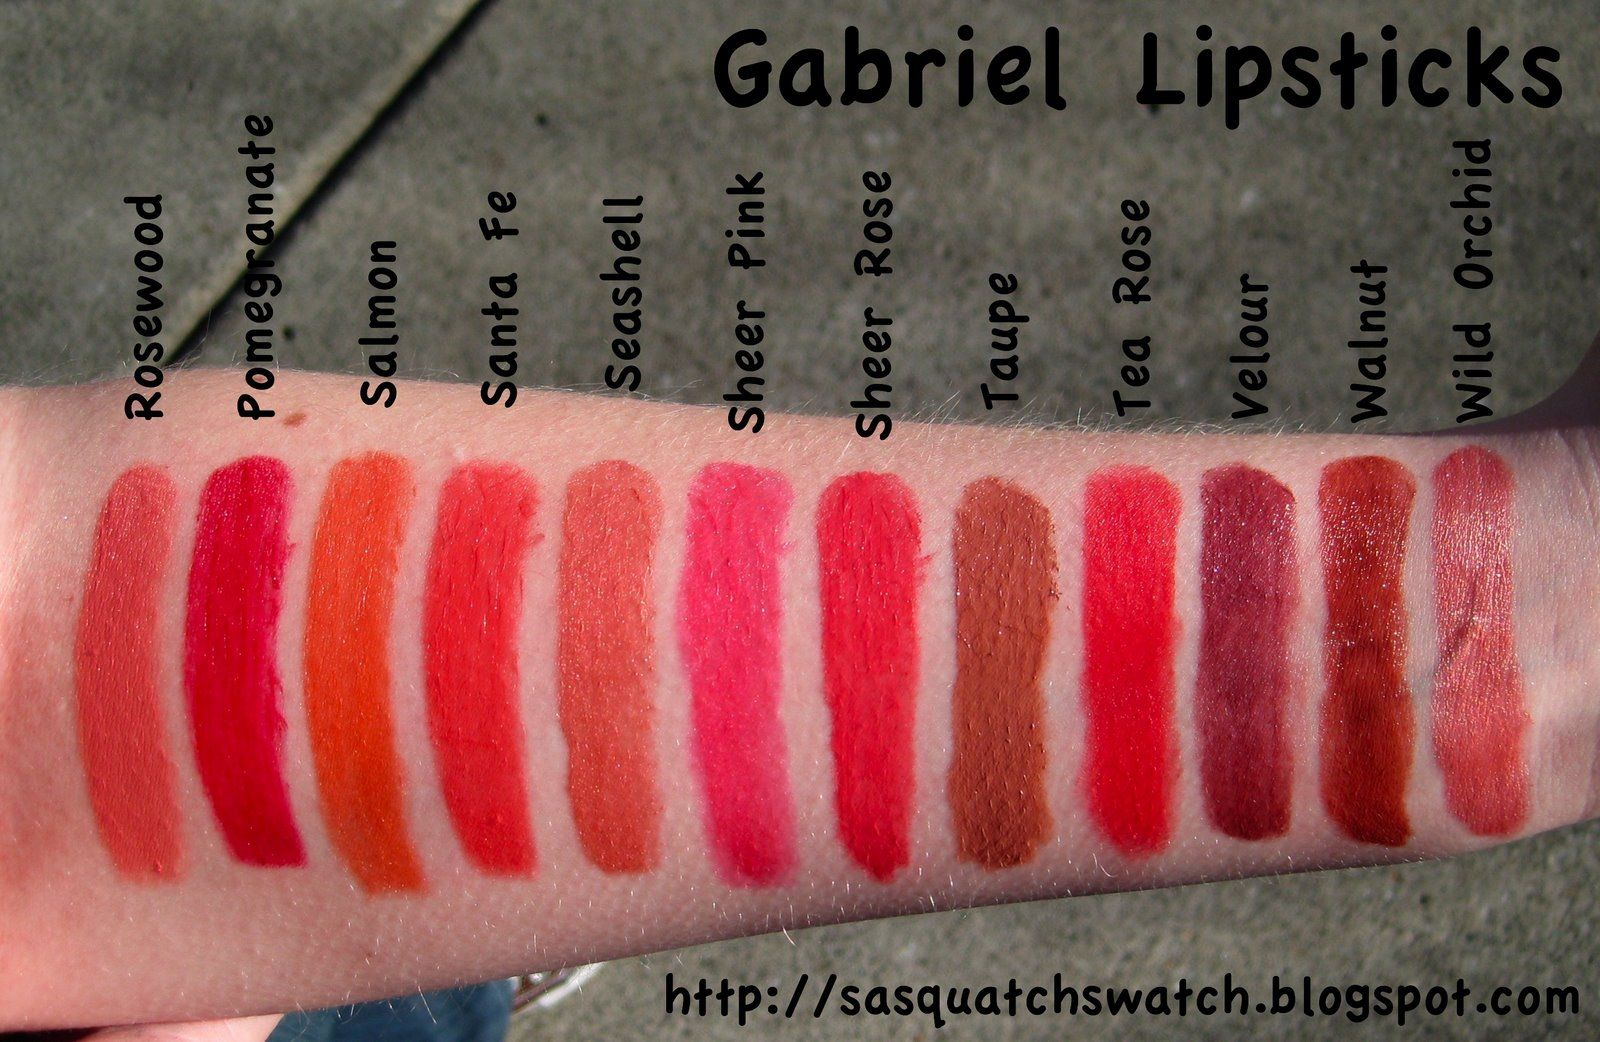 Gabriel Cosmetics Lipstick in Pomegranate (2nd from left